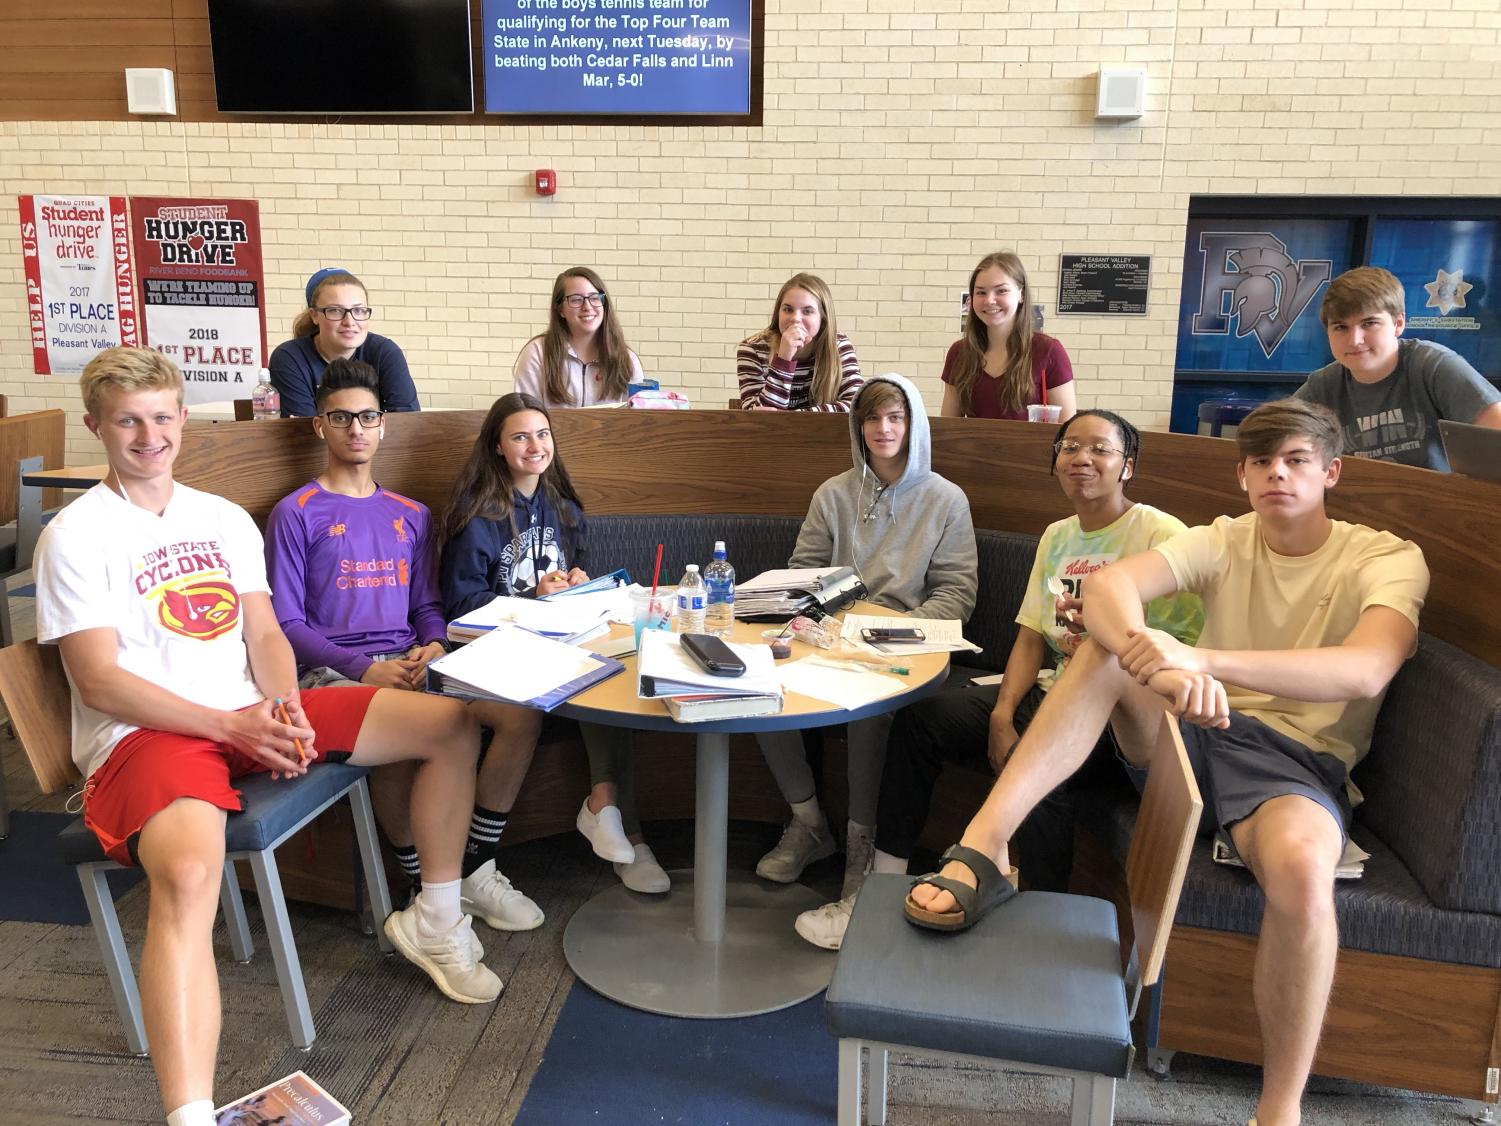 Pictured is some seniors as they prepare for their last few days of school.